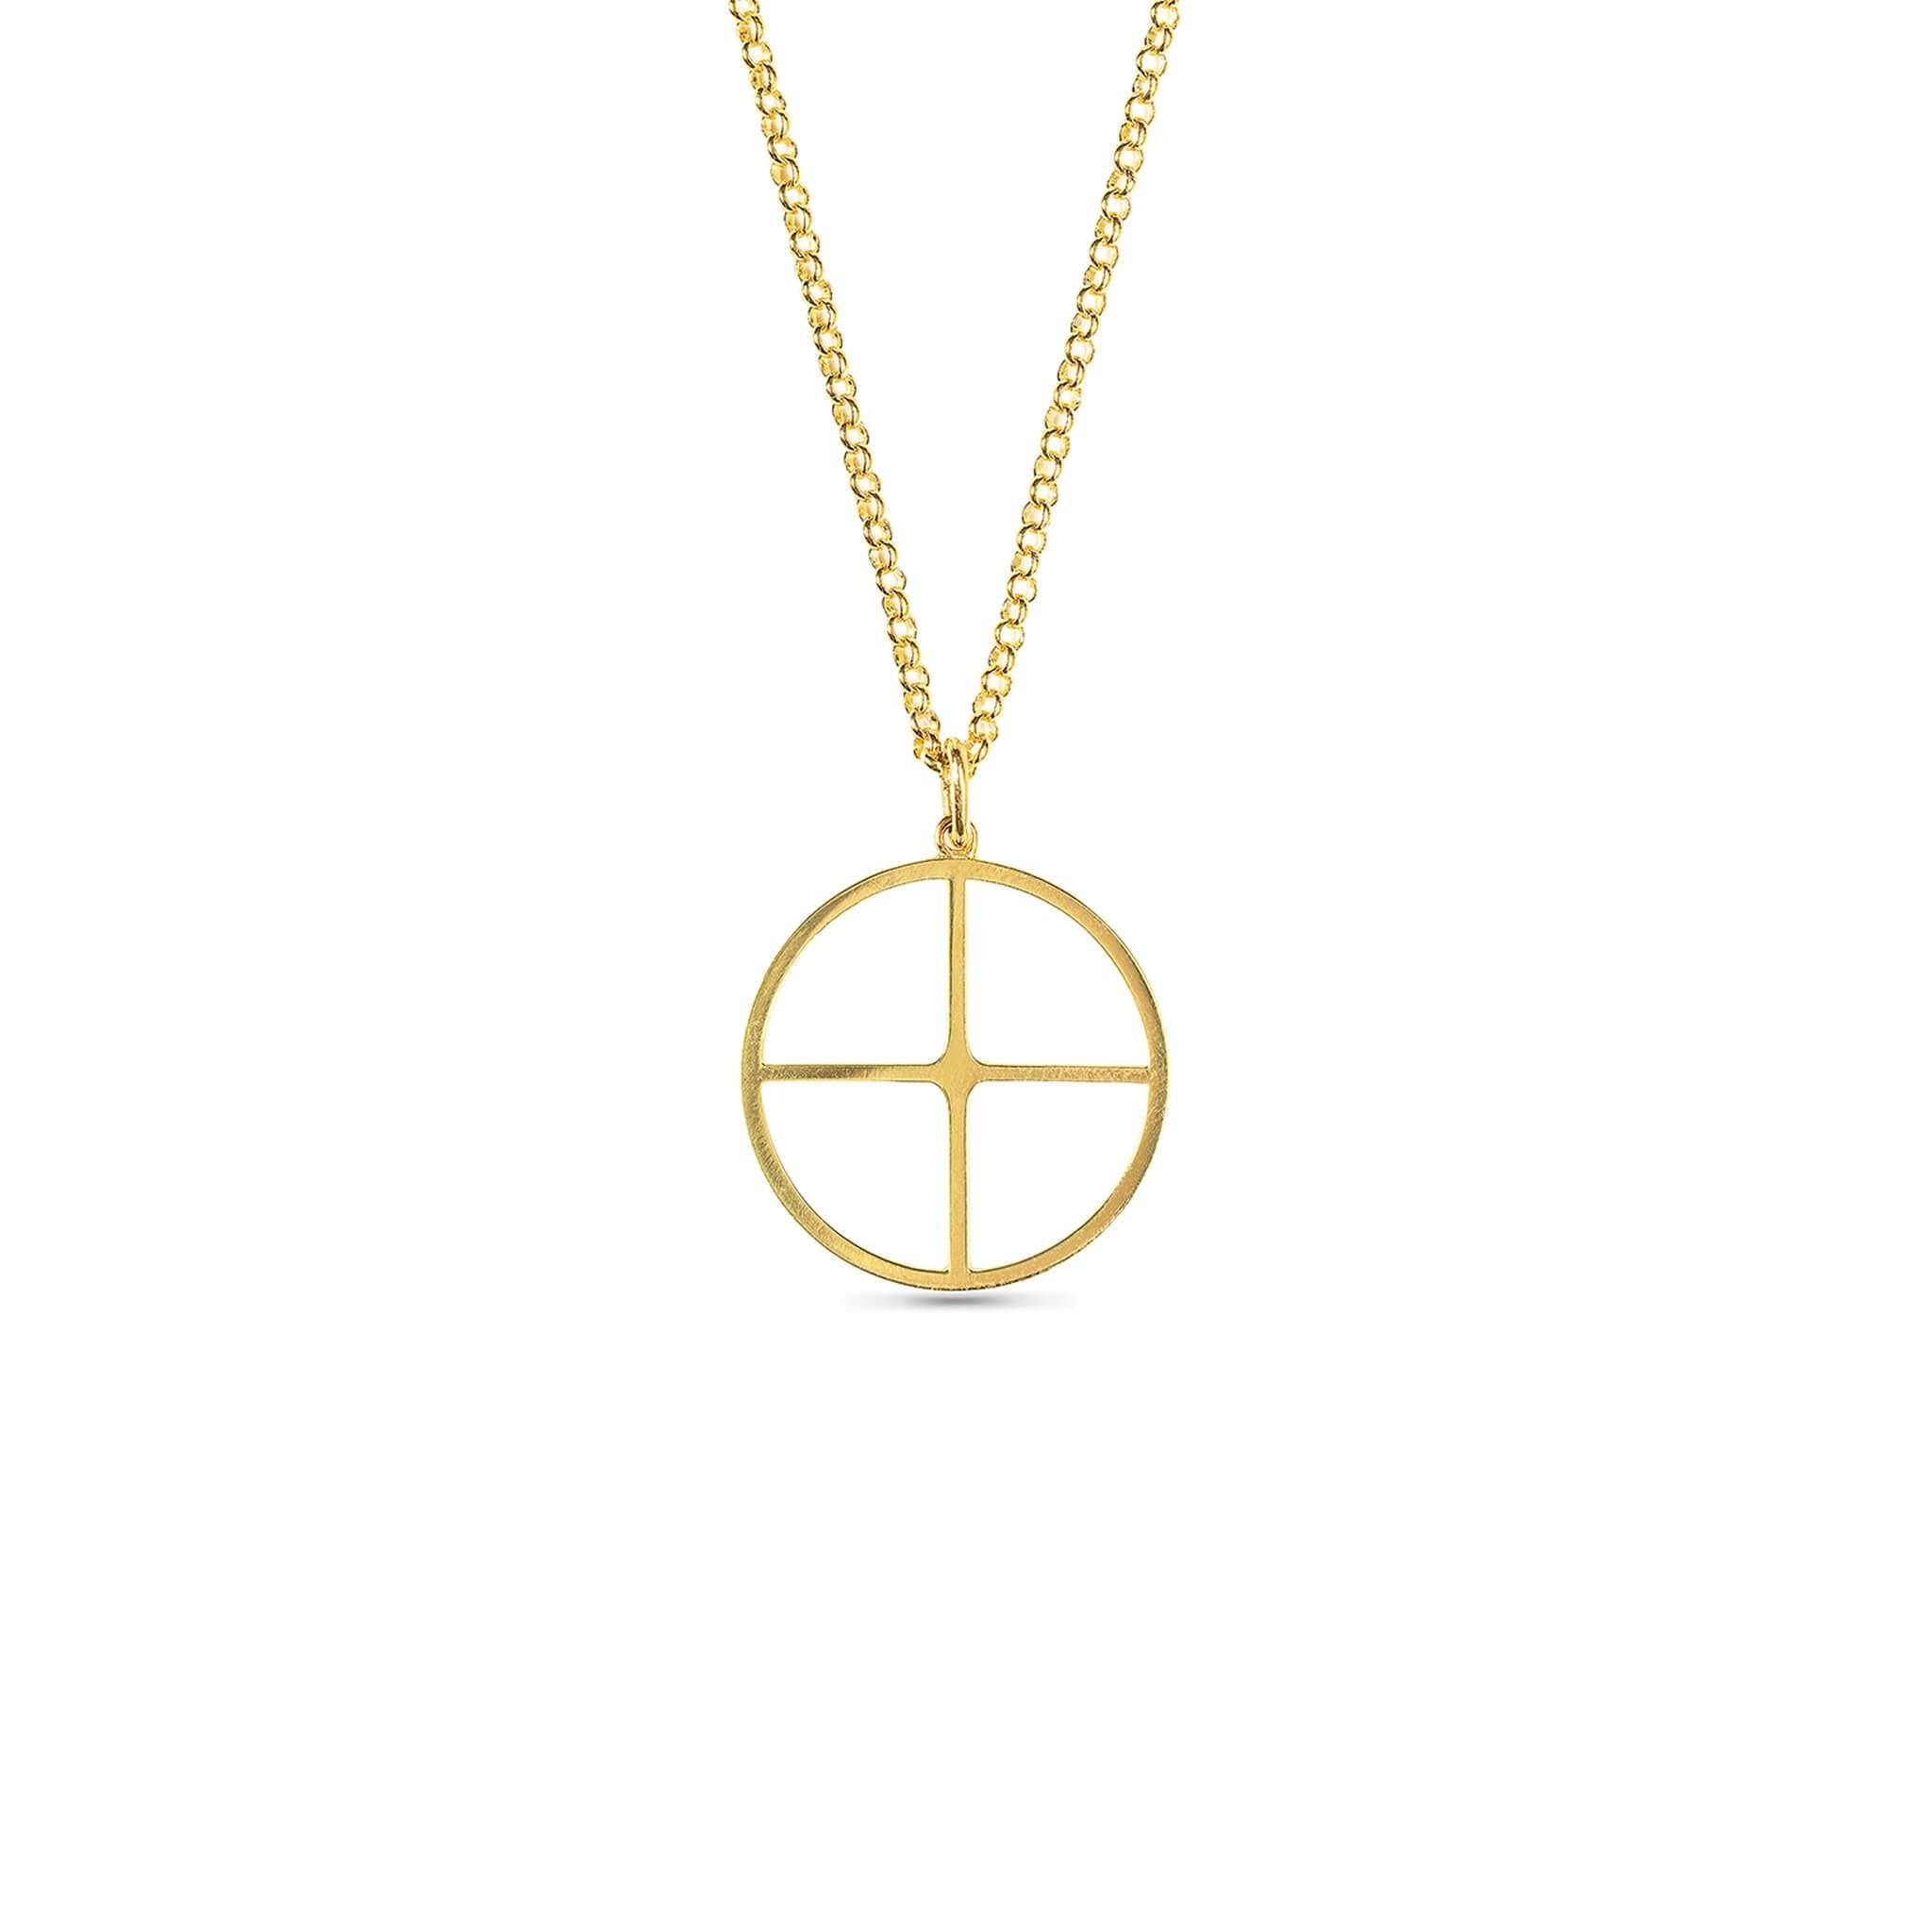 KESİŞEN YOLLAR KOLYE - CROSSROADS NECKLACE - 24 k Gold Plated Silver